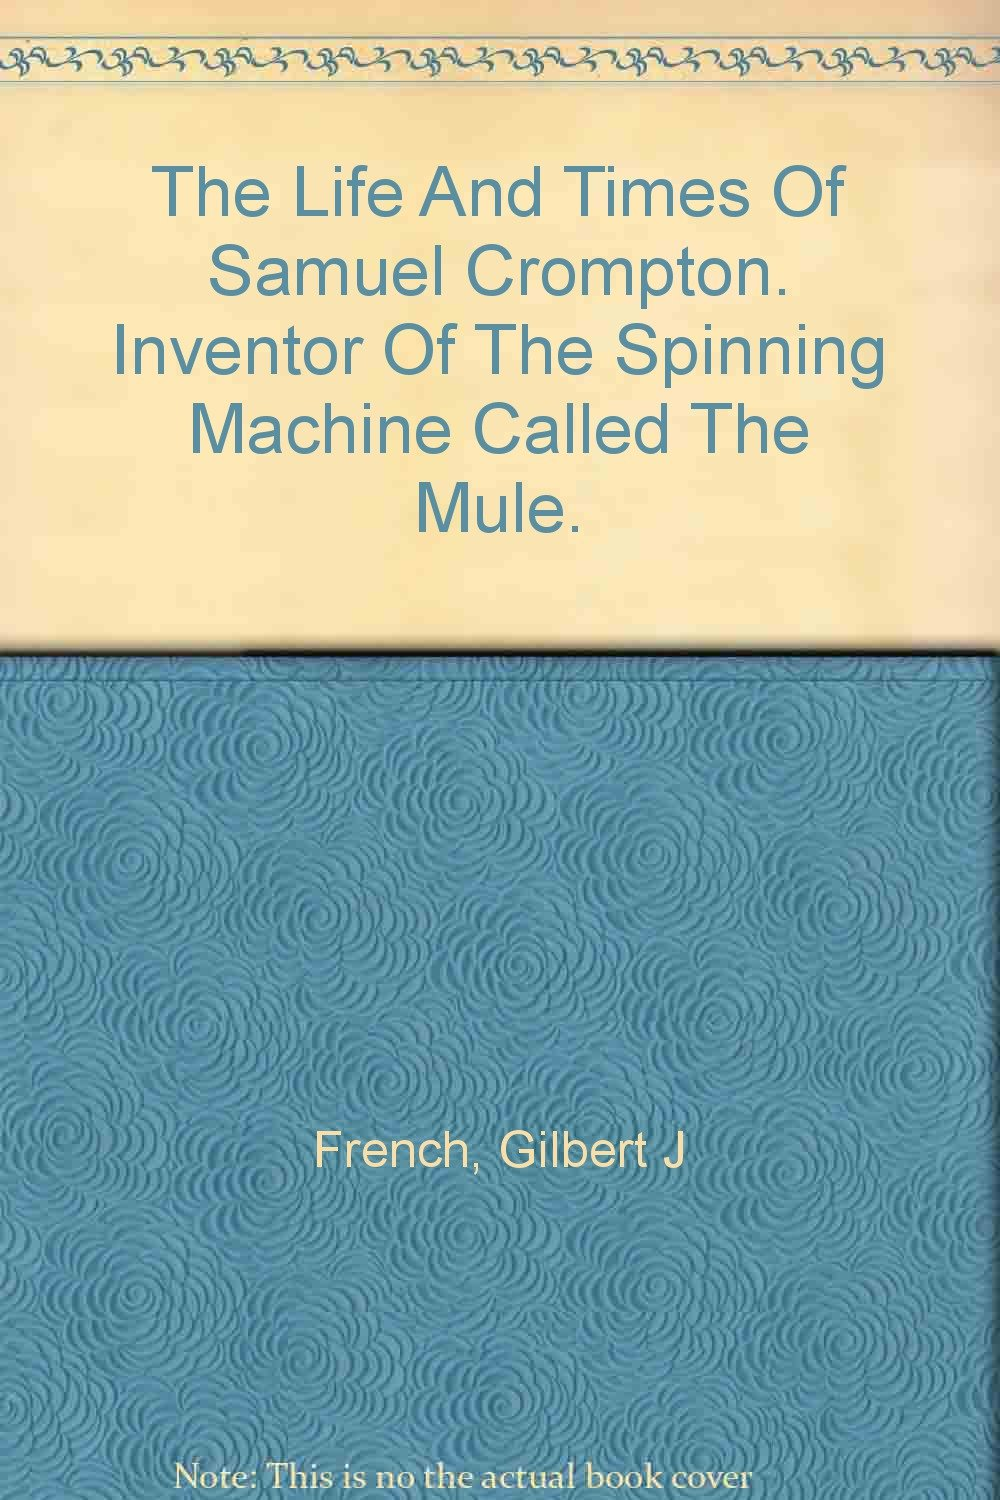 The Life and Times of Samuel Crompton Inventor of the Spinning ...